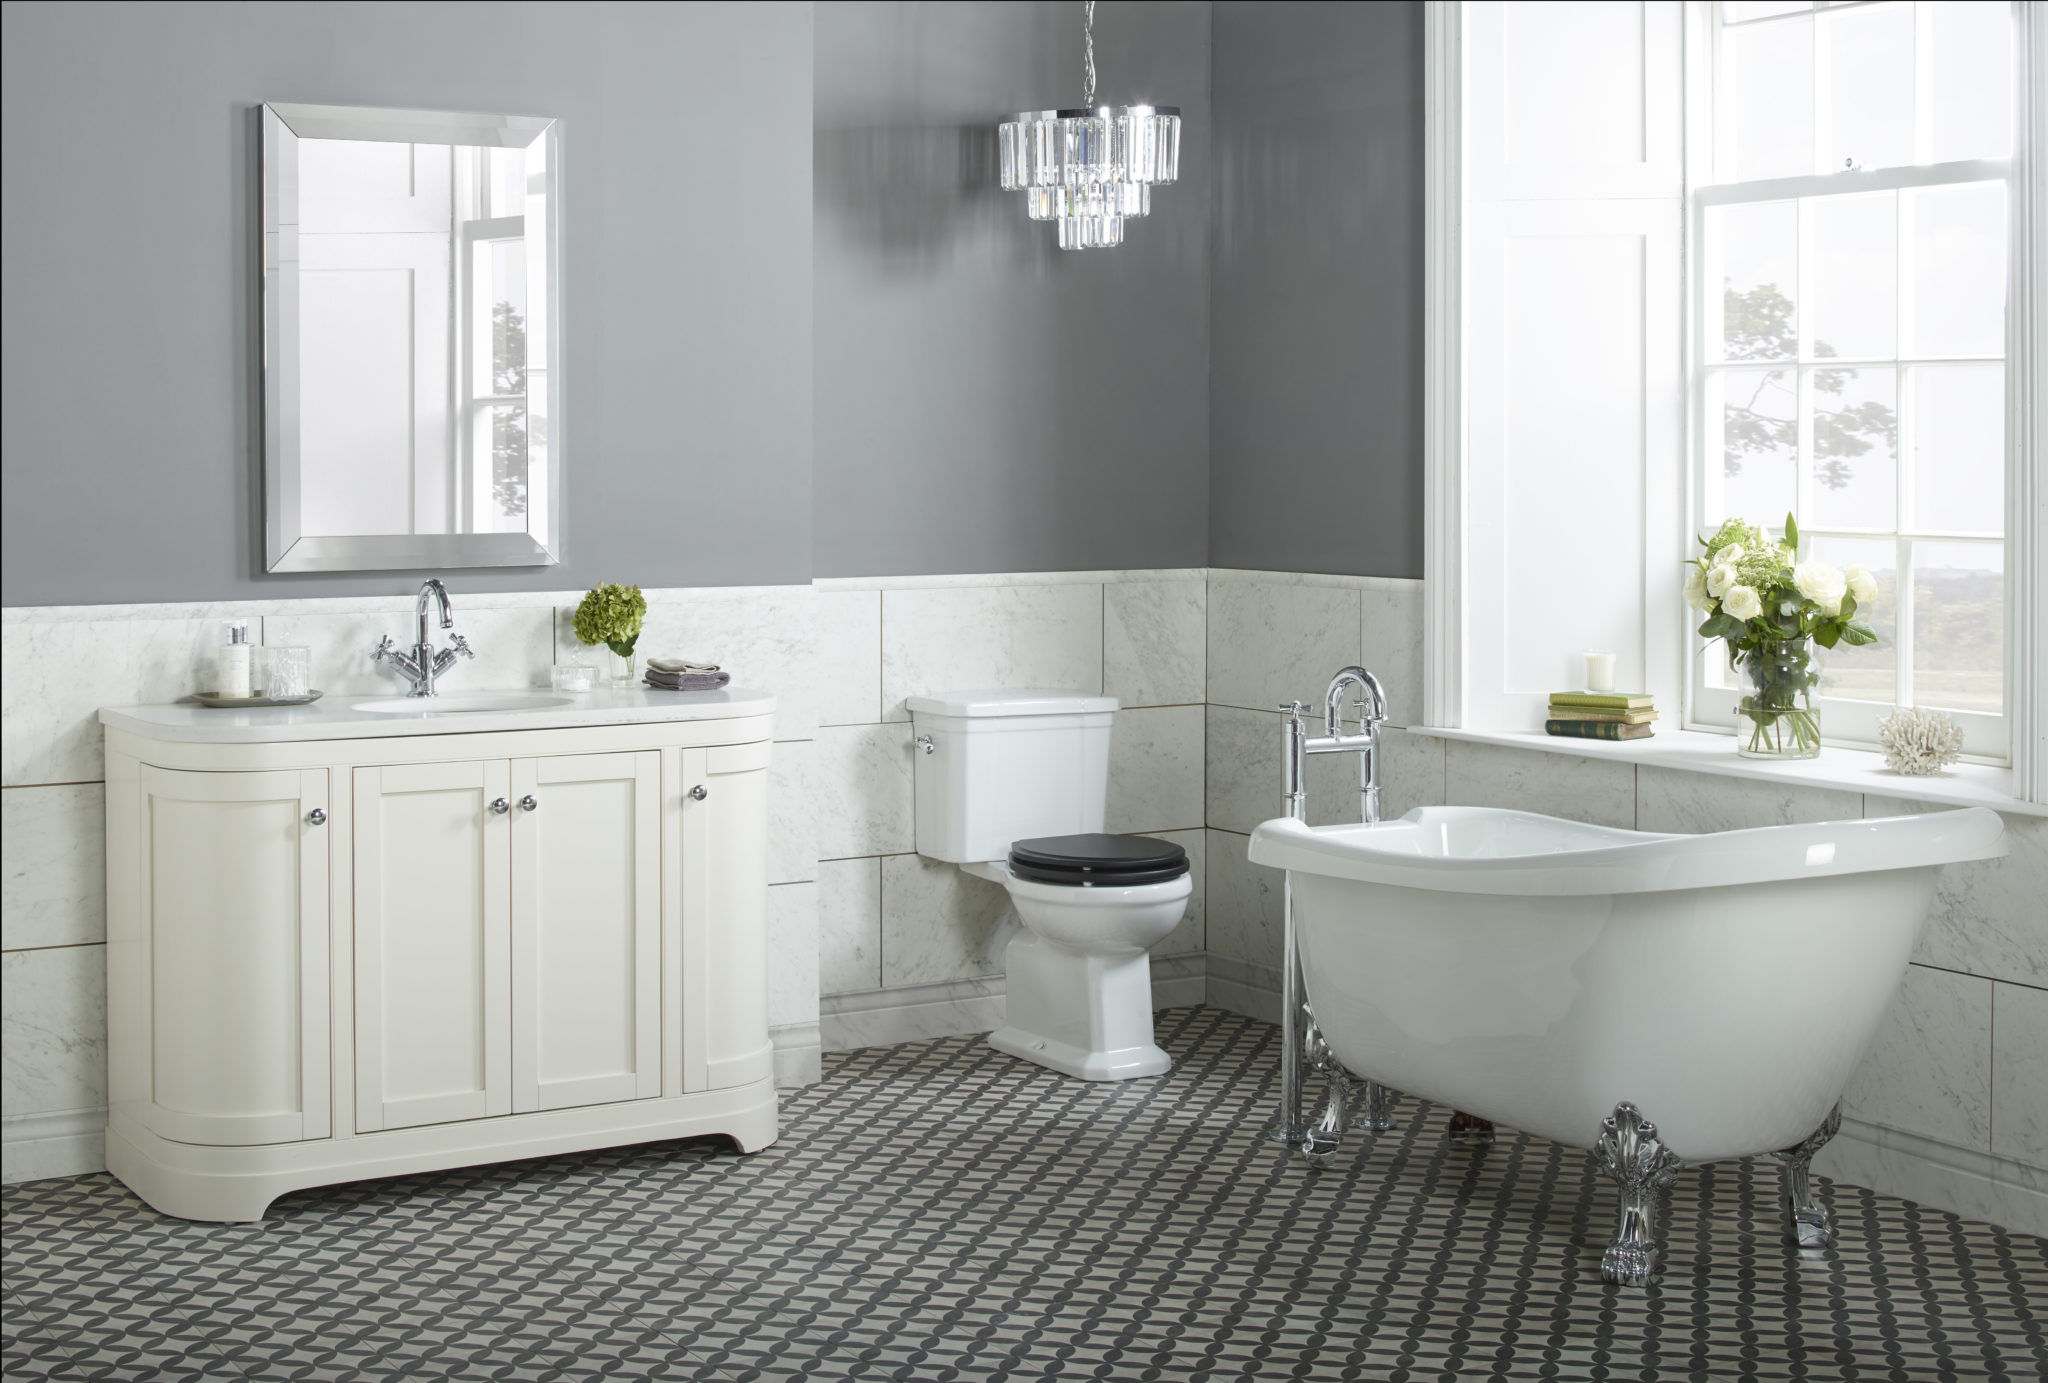 laura ashley bathroom collection bathroom installations northallerton think kitchens. Black Bedroom Furniture Sets. Home Design Ideas